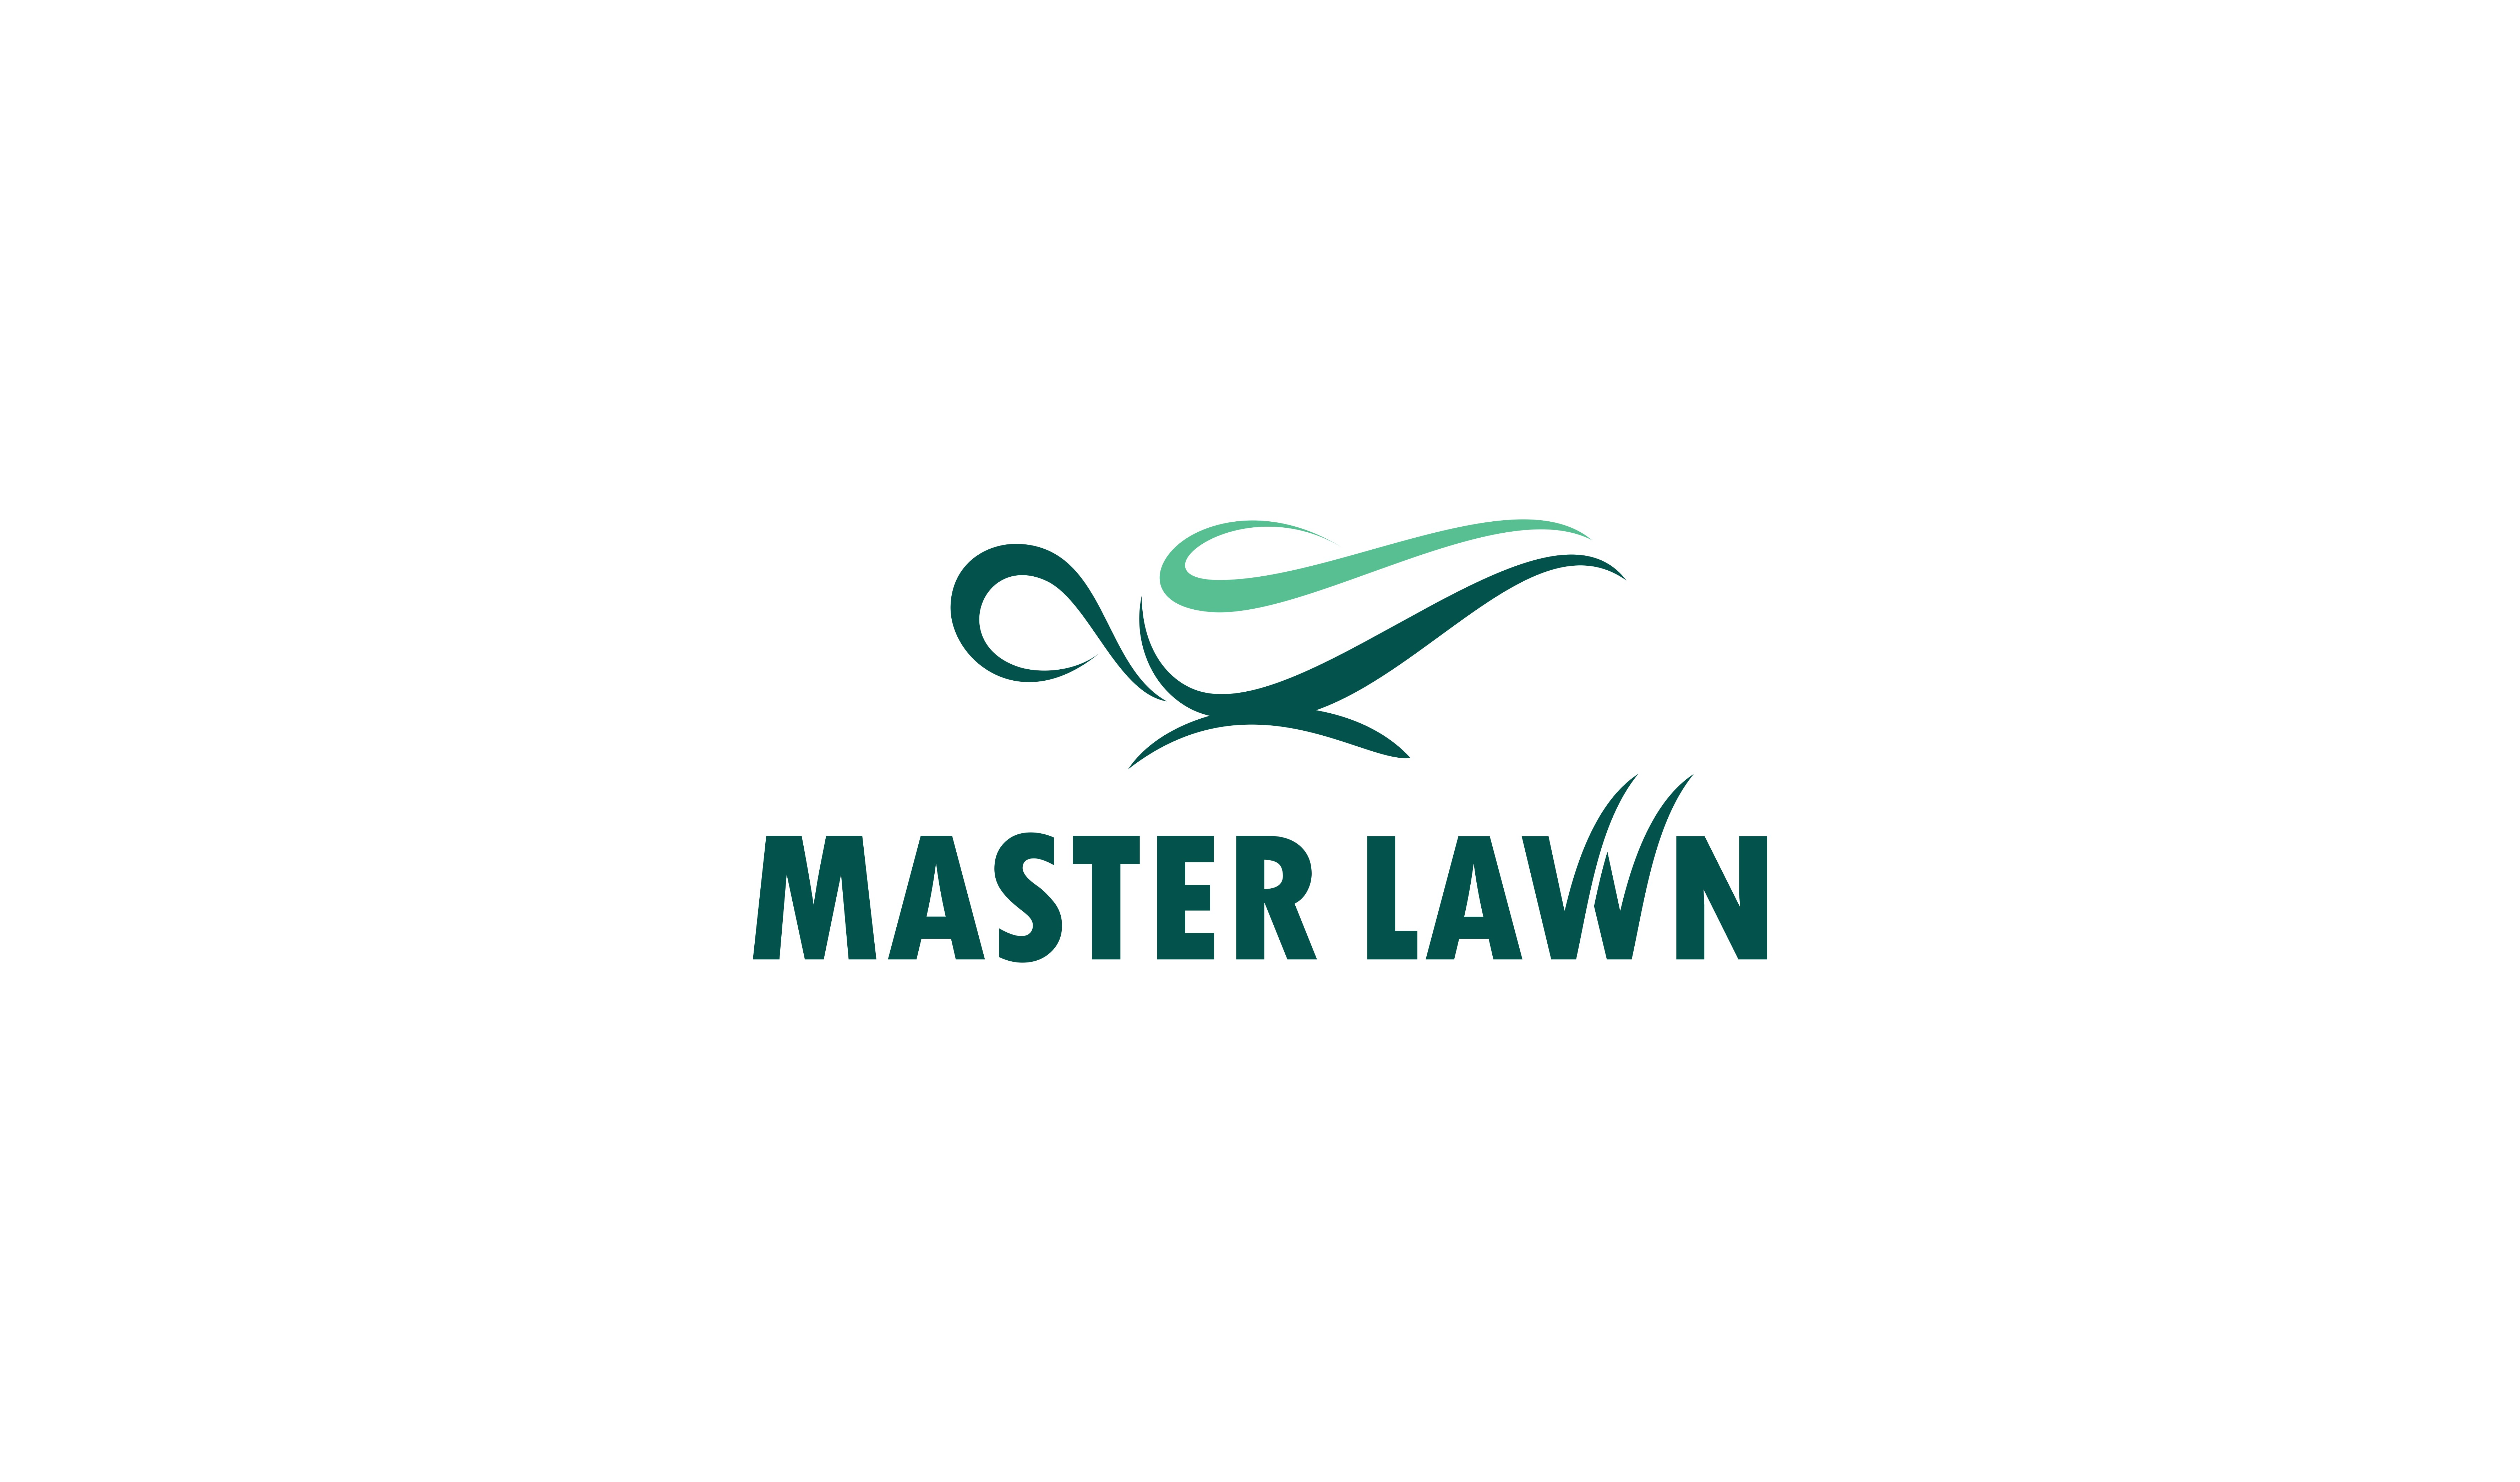 Lawn care company looking to weed out the competition with new logo